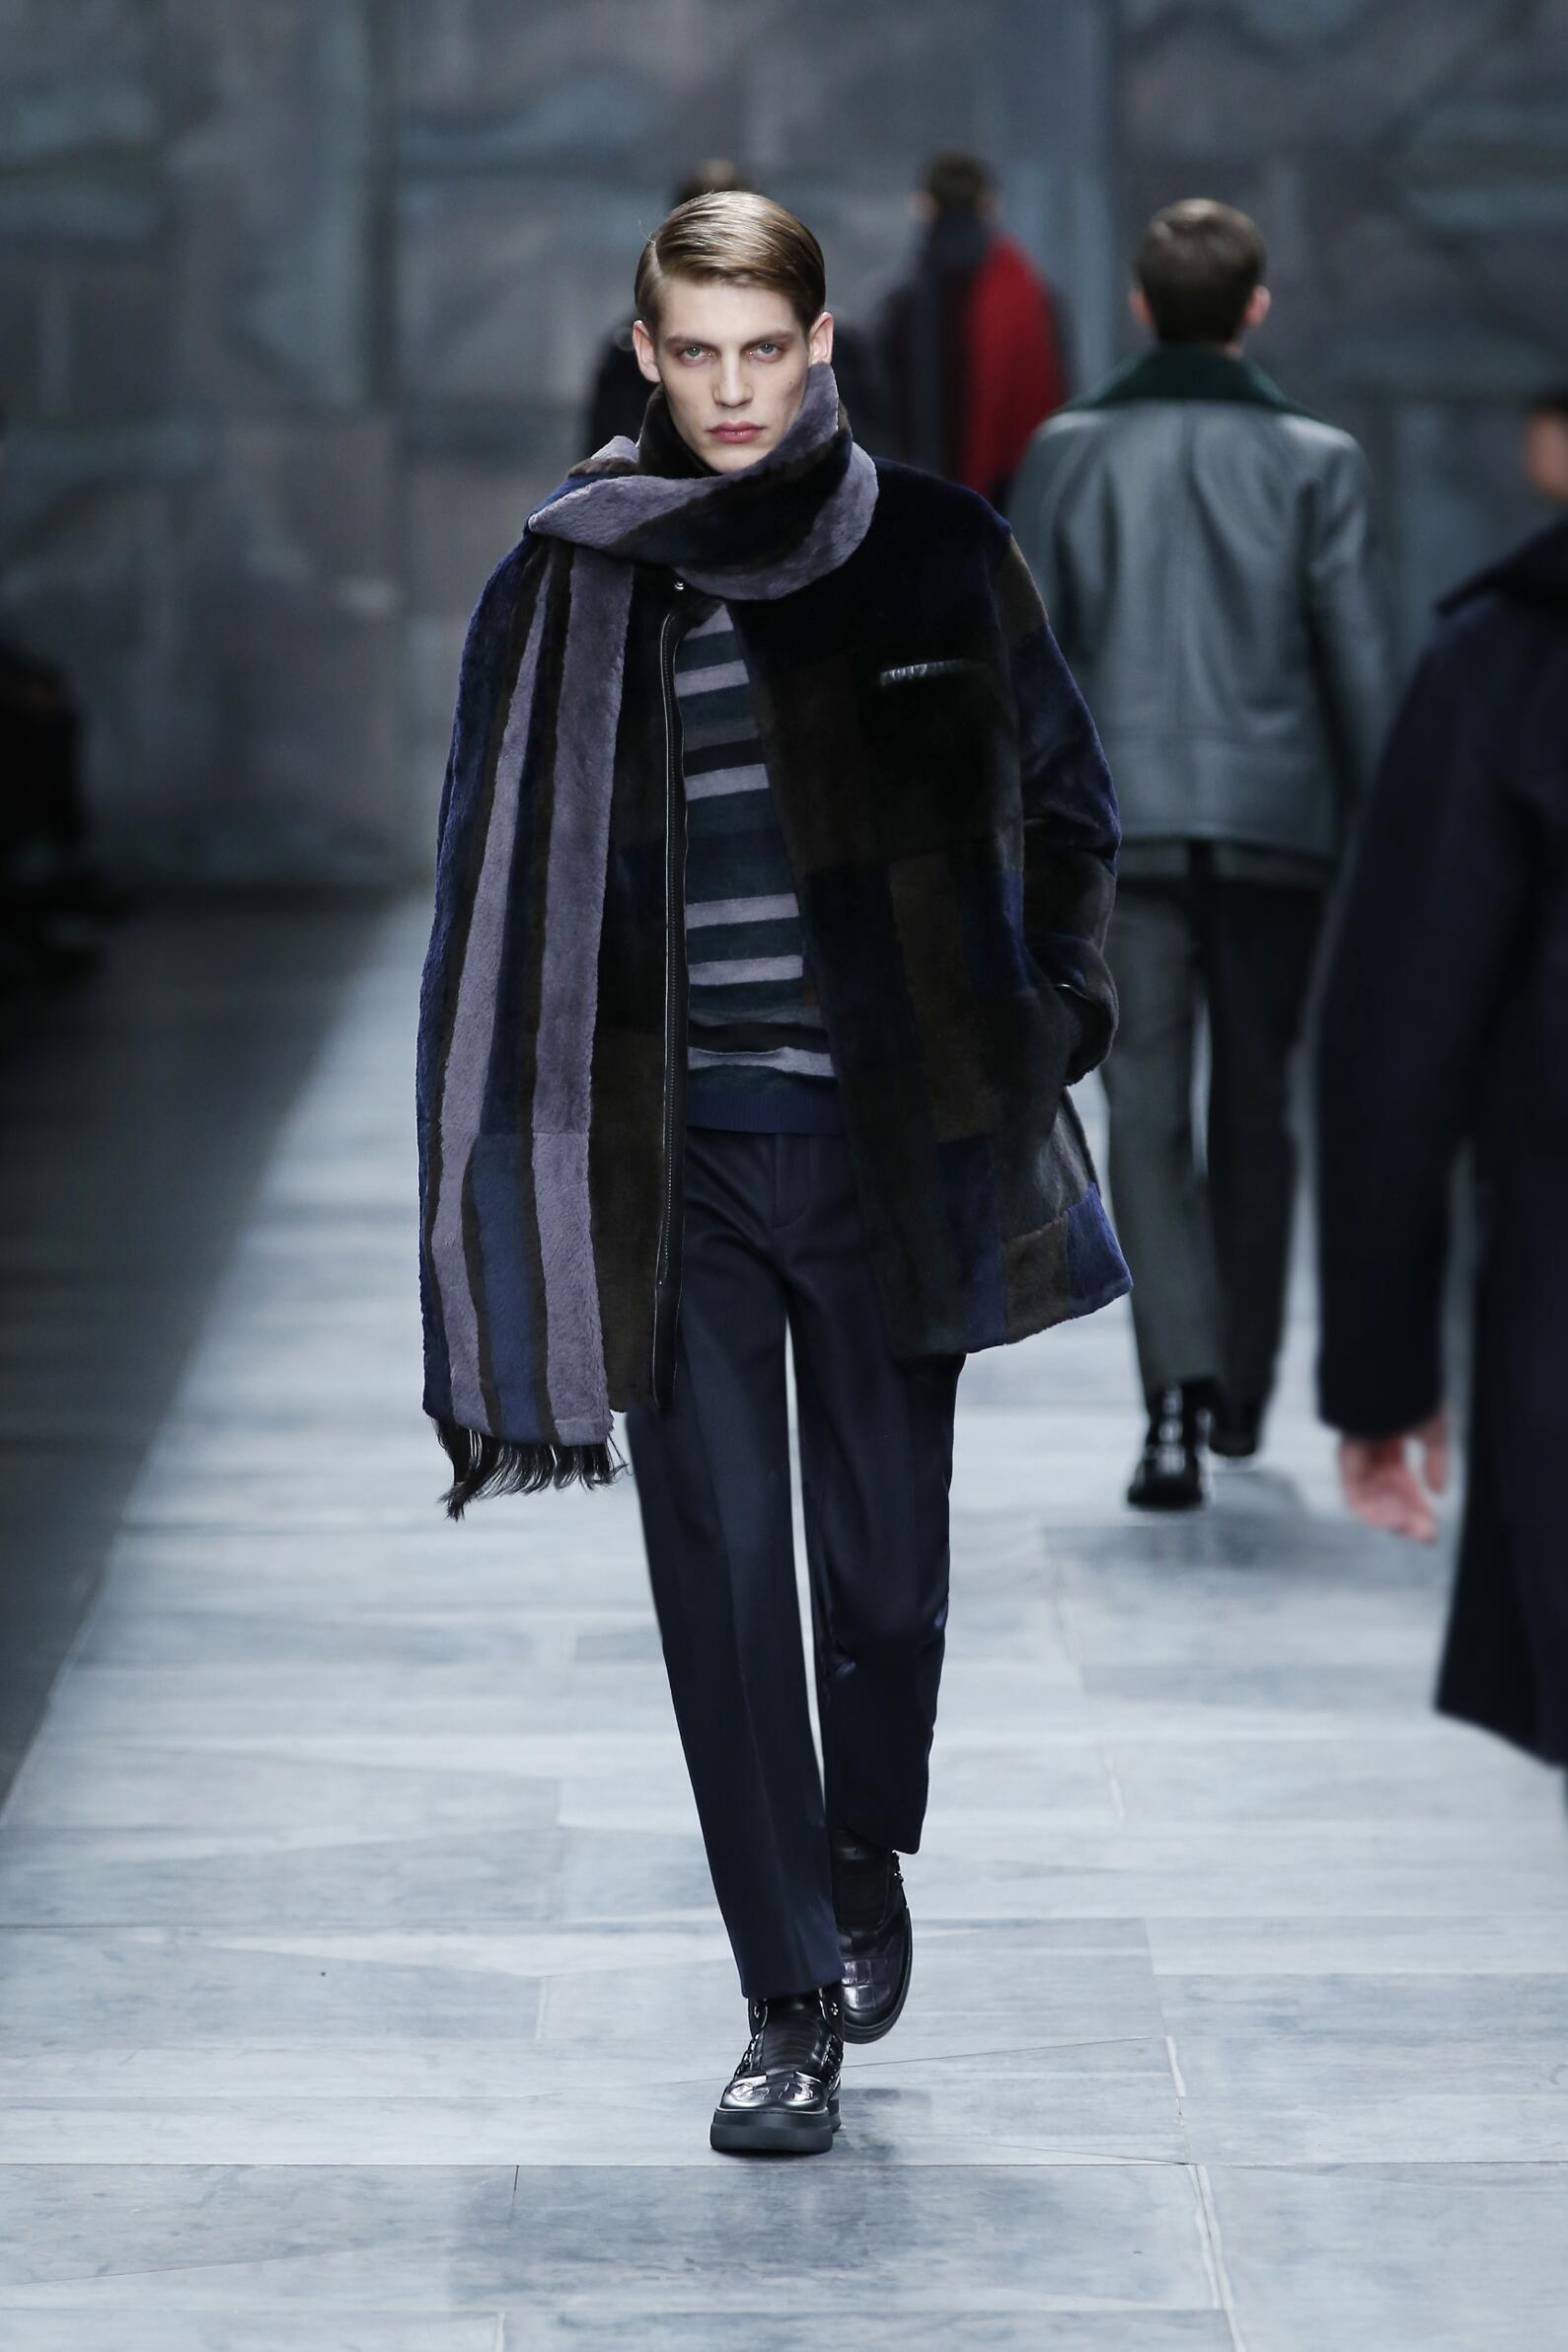 Catwalk Fendi Fall Winter 2015 16 Men's Collection Milano Fashion Week